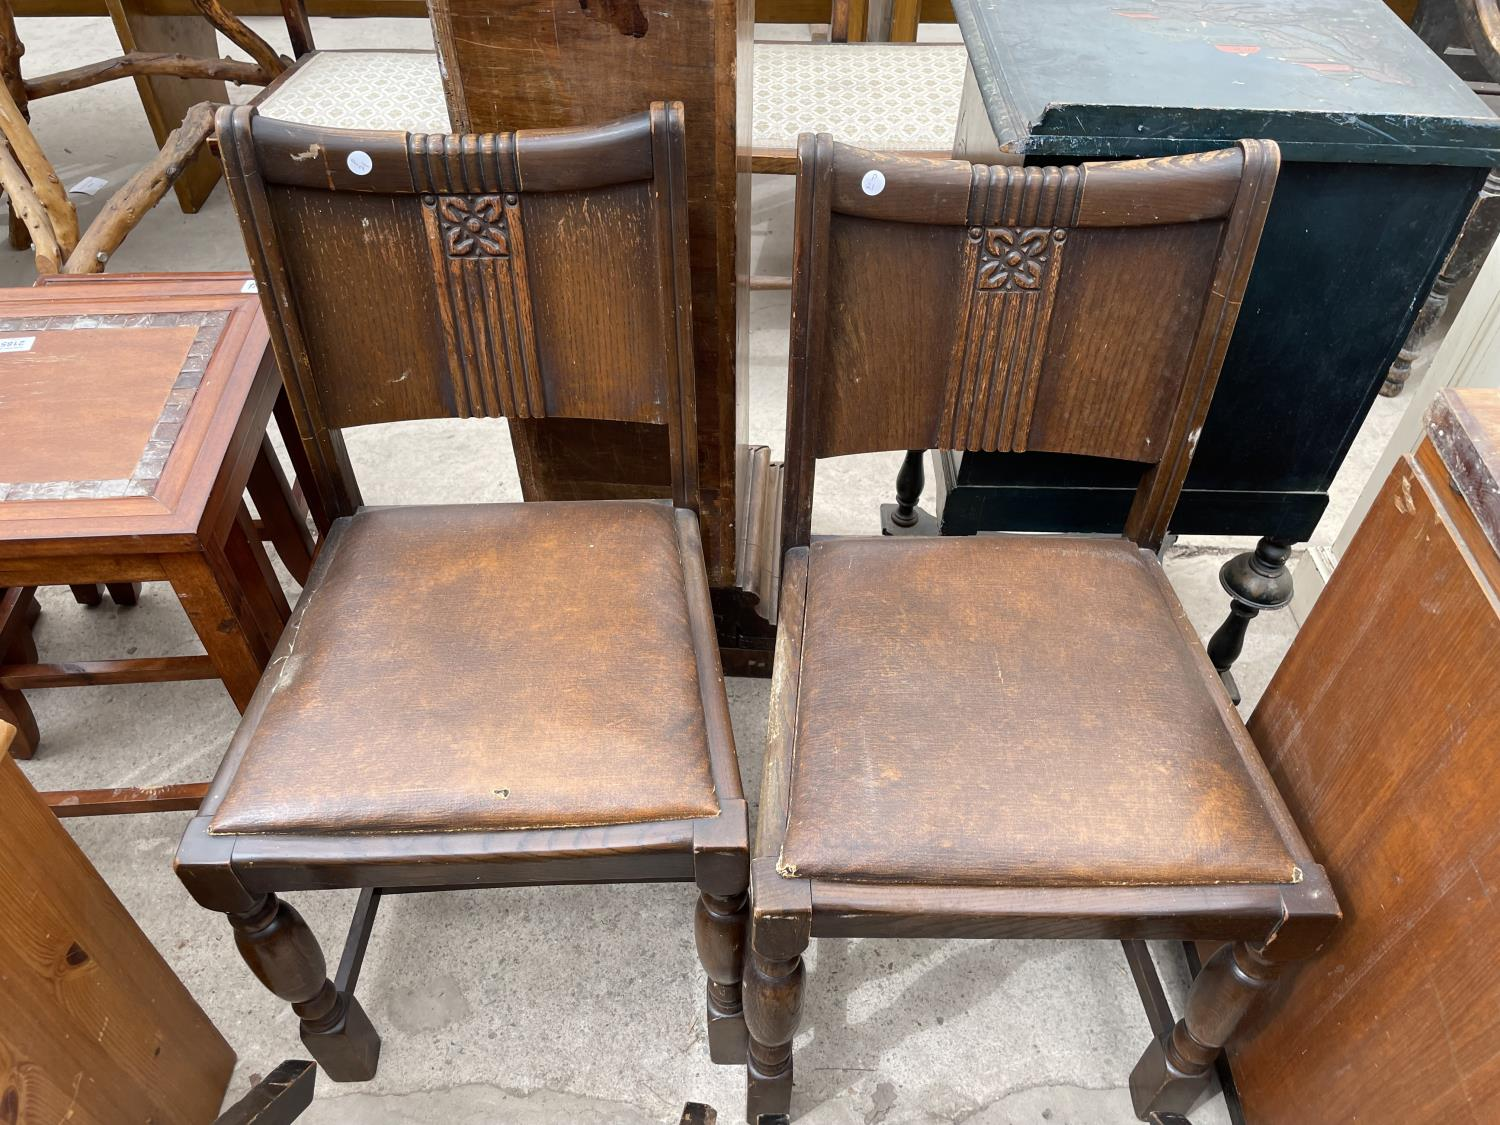 A SET OF FOUR EARLY 20TH CENTURY OAK DINING CHAIRS AND A PINE LOCKER - Image 5 of 5